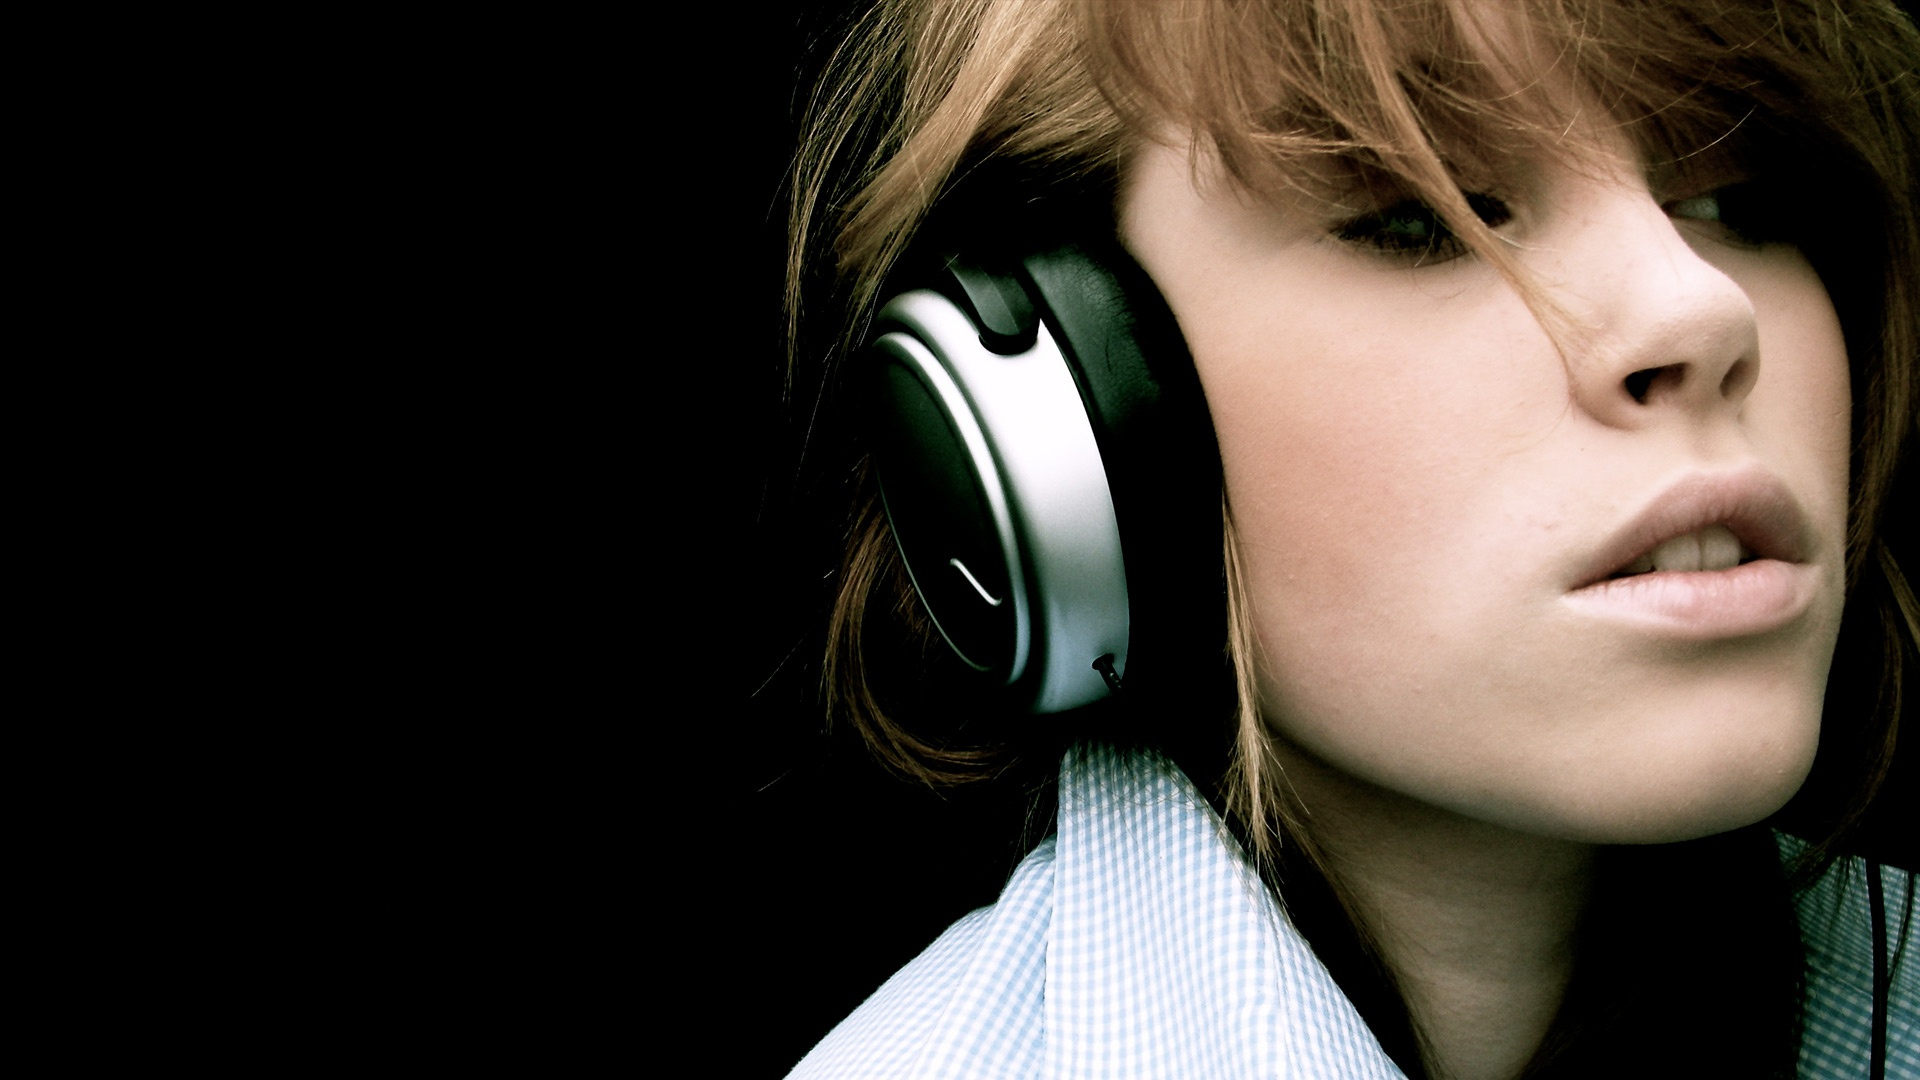 music girl wallpapers headphones - photo #15